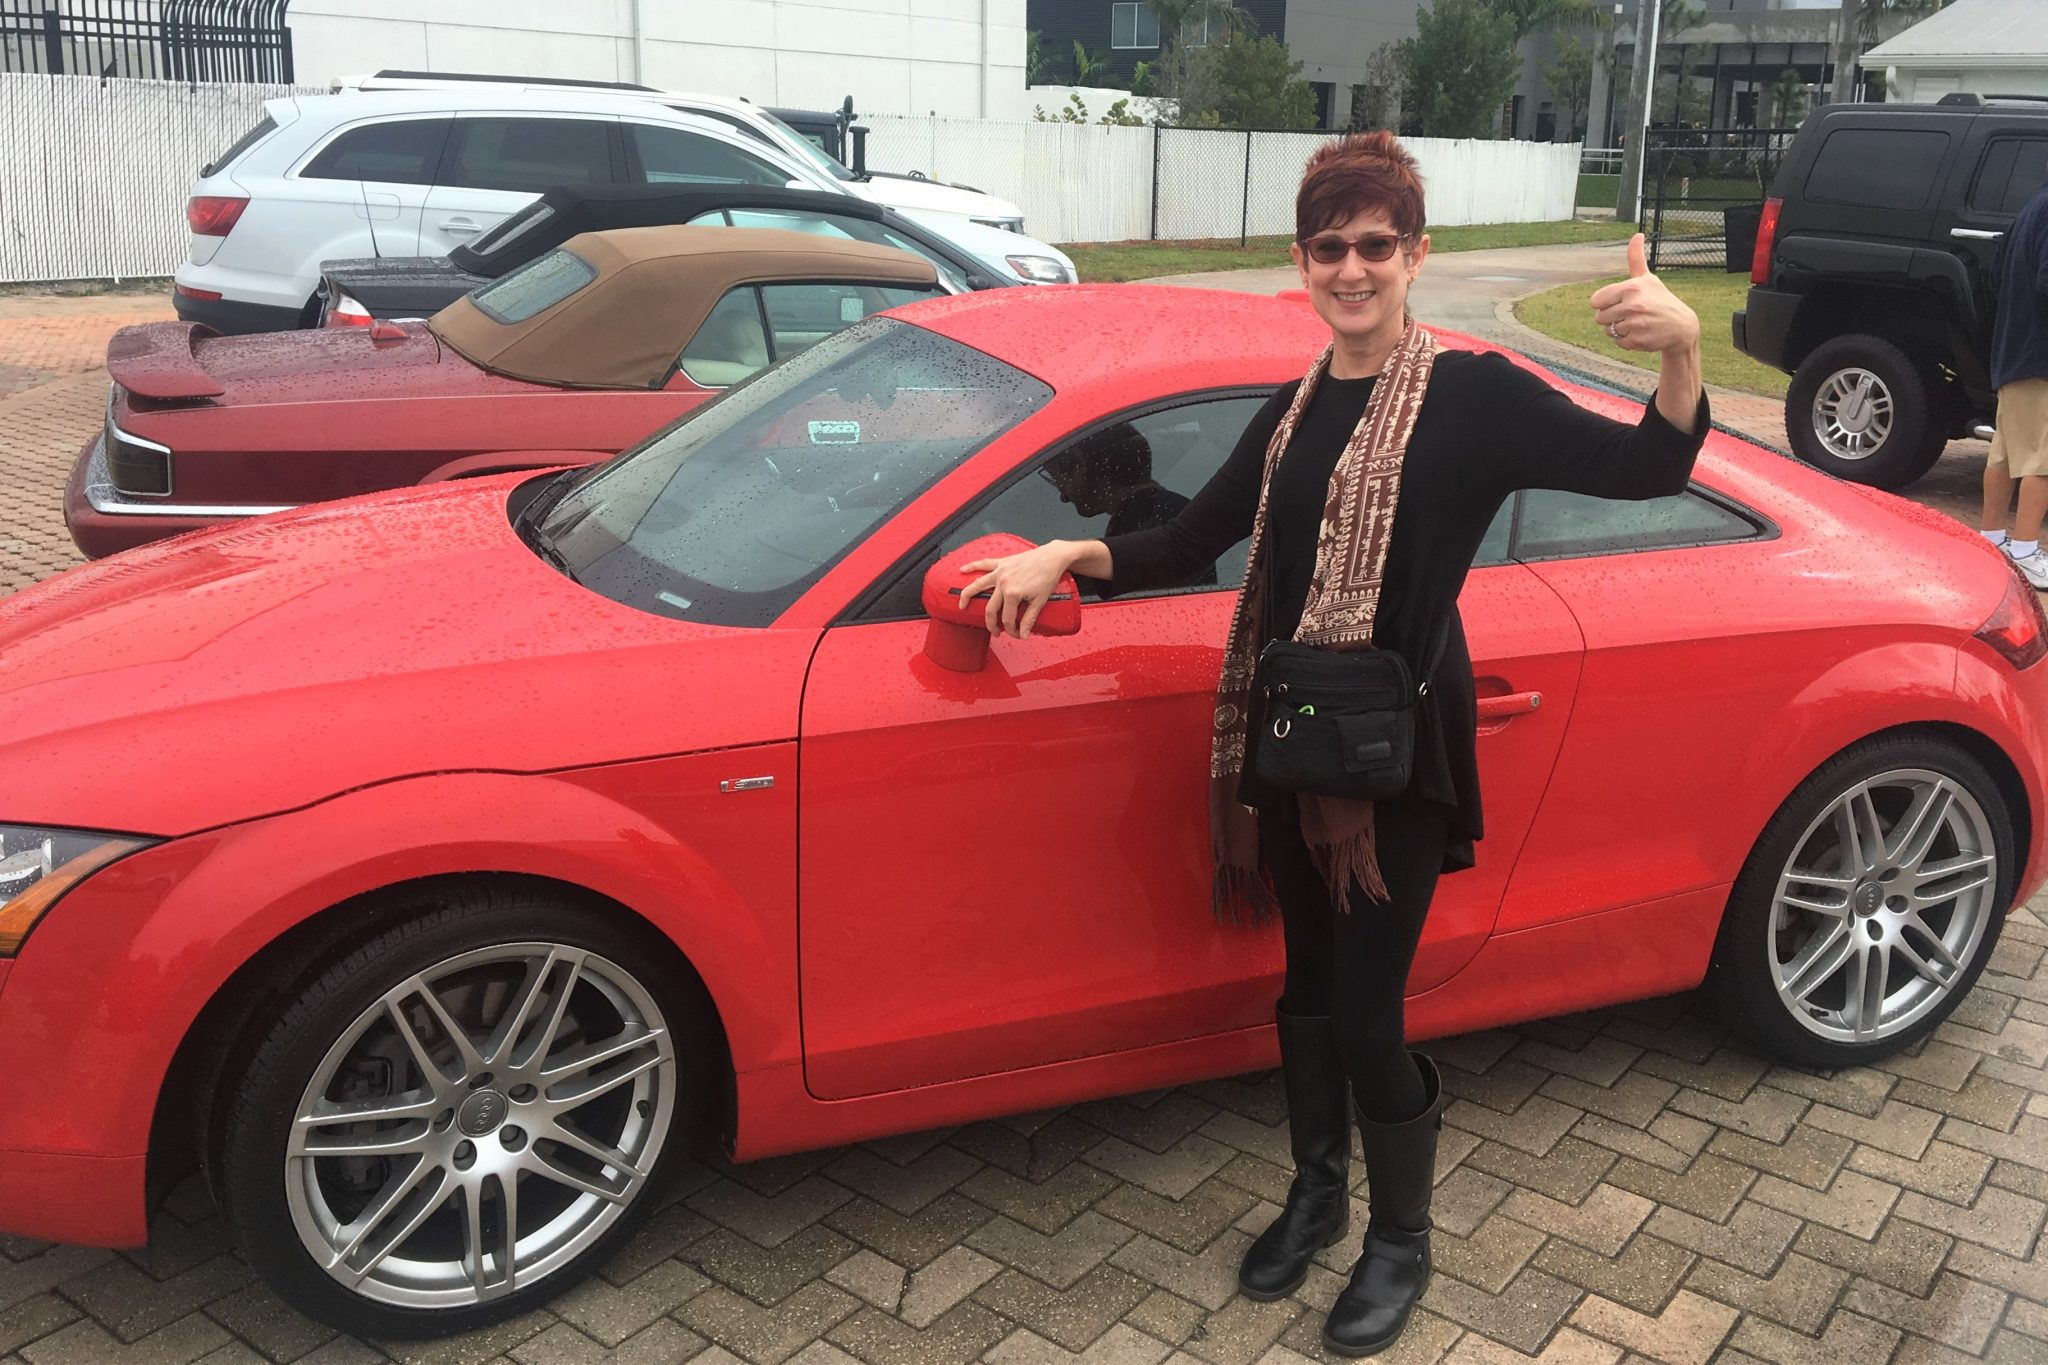 Dunzik-Gougar with her red Audi 6-speed sports car